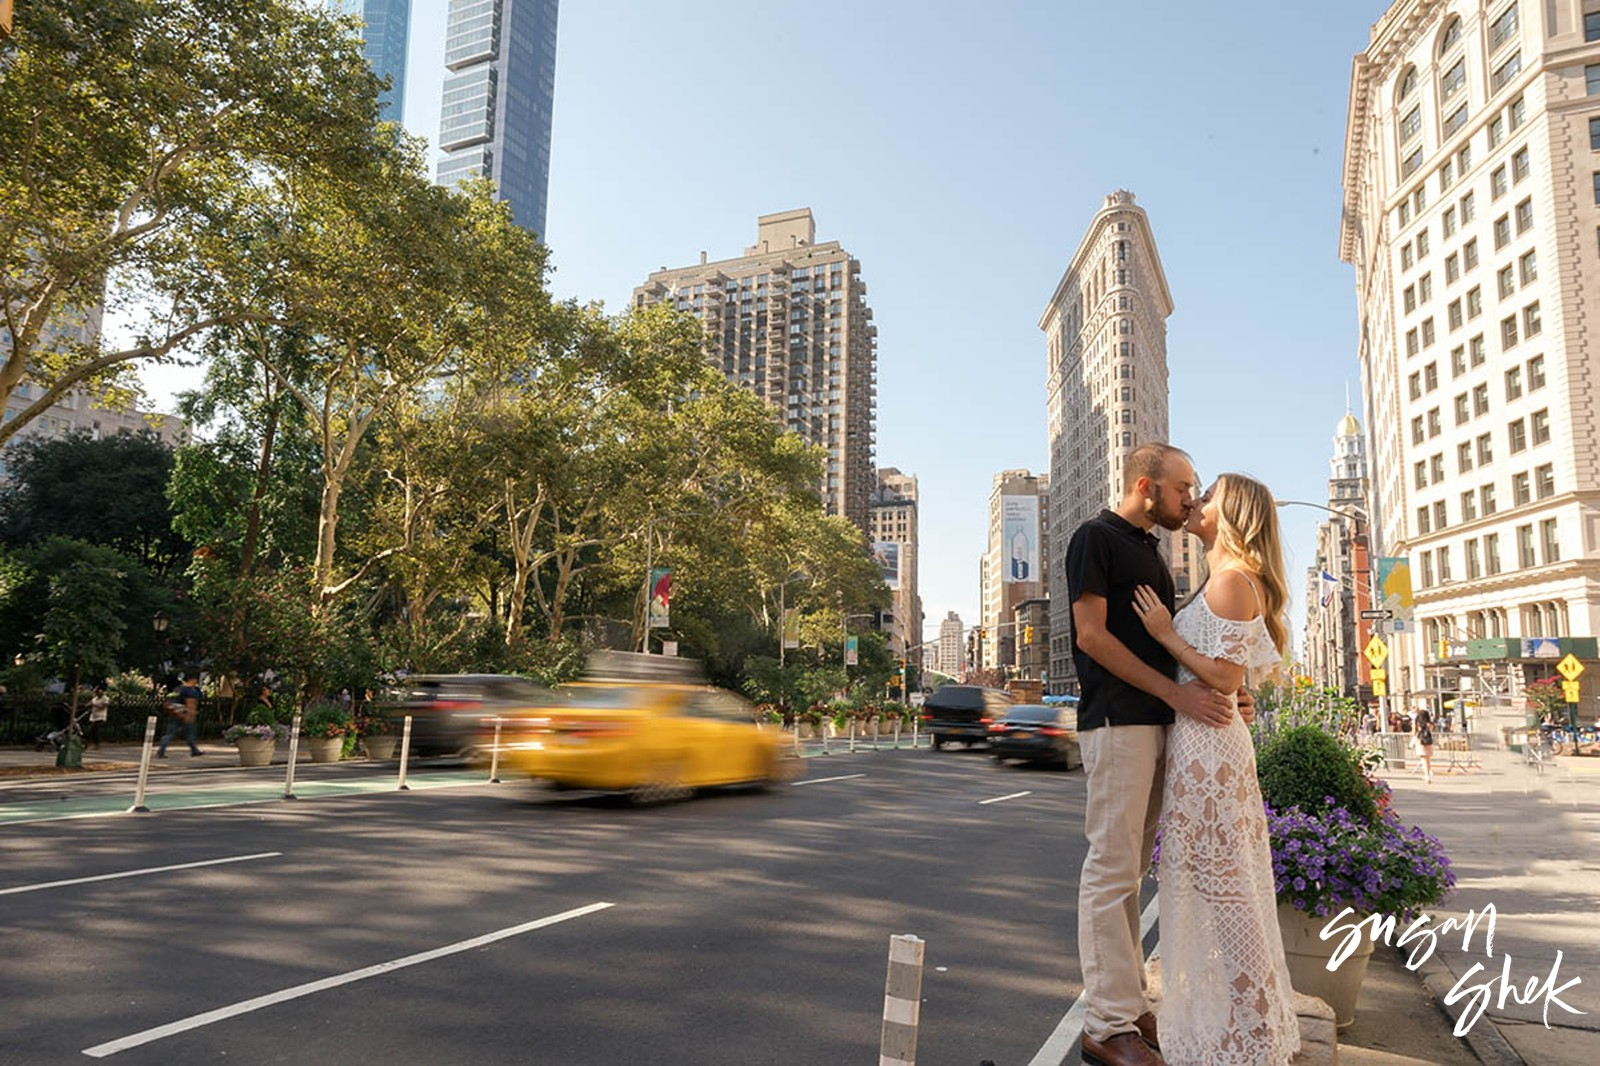 Flatiron Engagement, Engagement Shoot, NYC Engagement Photographer, Engagement Session, Engagement Photography, Engagement Photographer, NYC Wedding Photographer